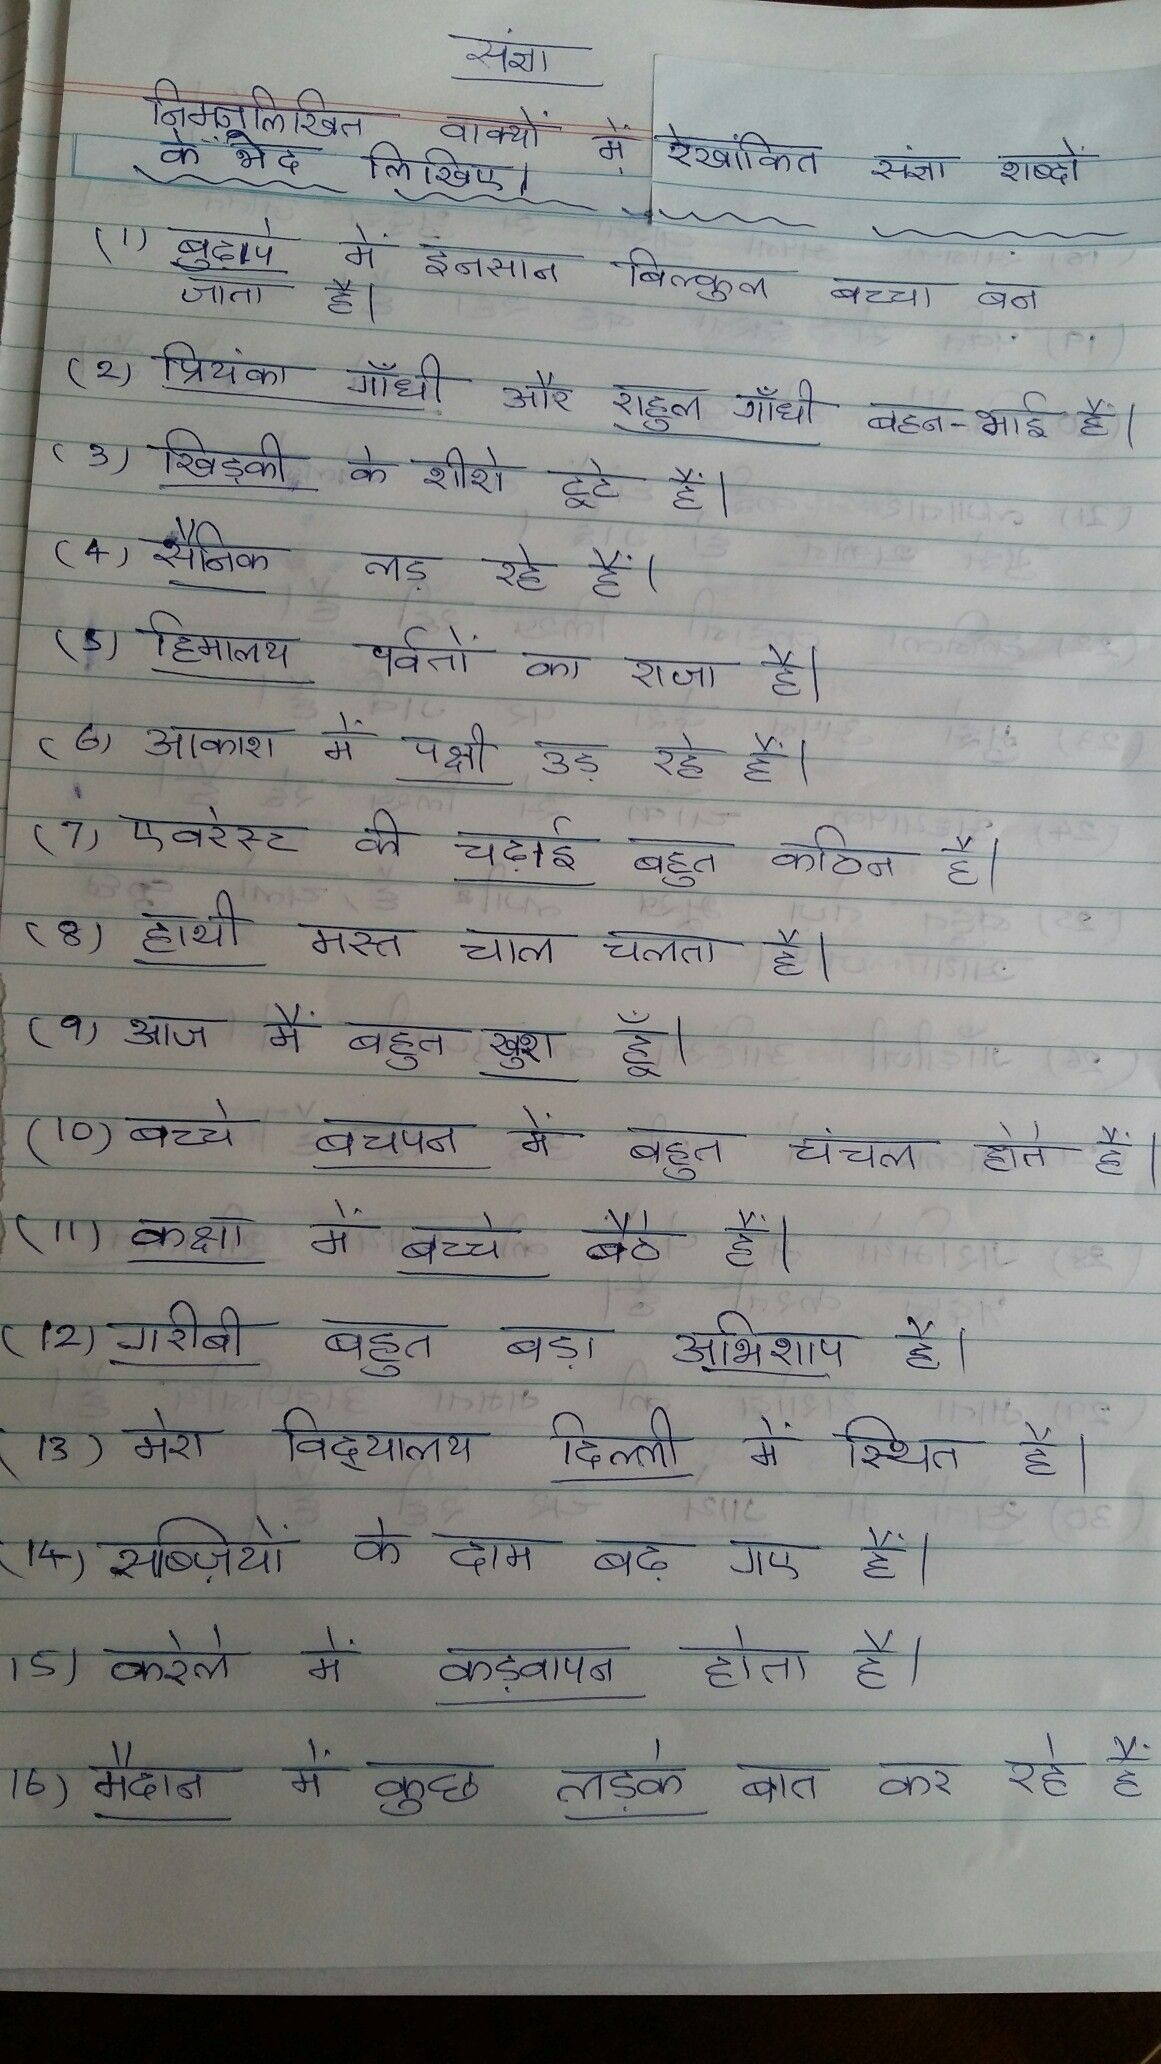 Hindi grammar WORKSHEETSSANGYAPNV Hindi worksheets